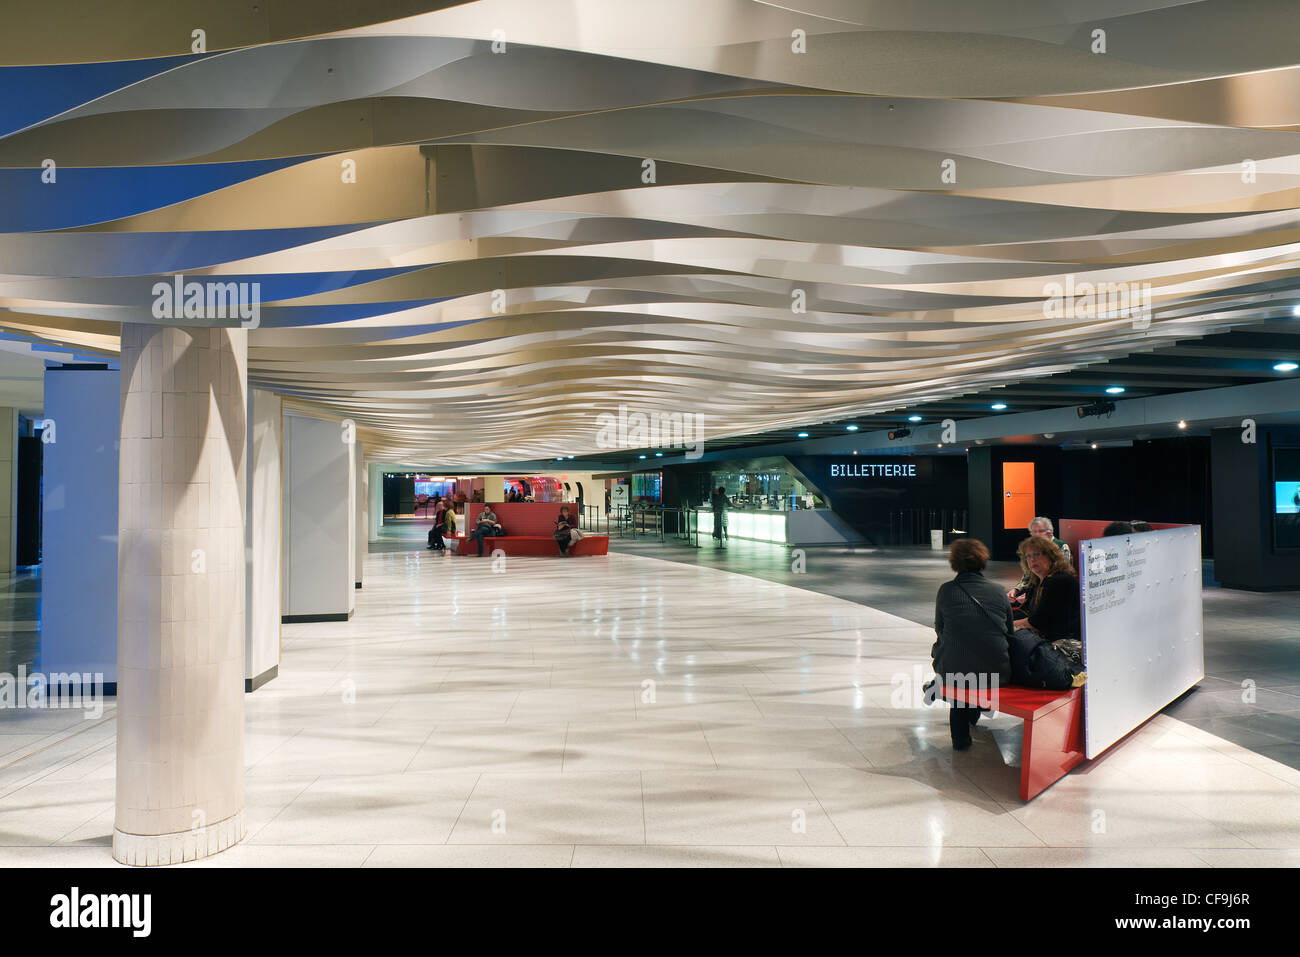 Entrance to Wilfrid-Pelletier hall and ticket office, Place-des-Arts, Montreal, province of Quebec, Canada. - Stock Image